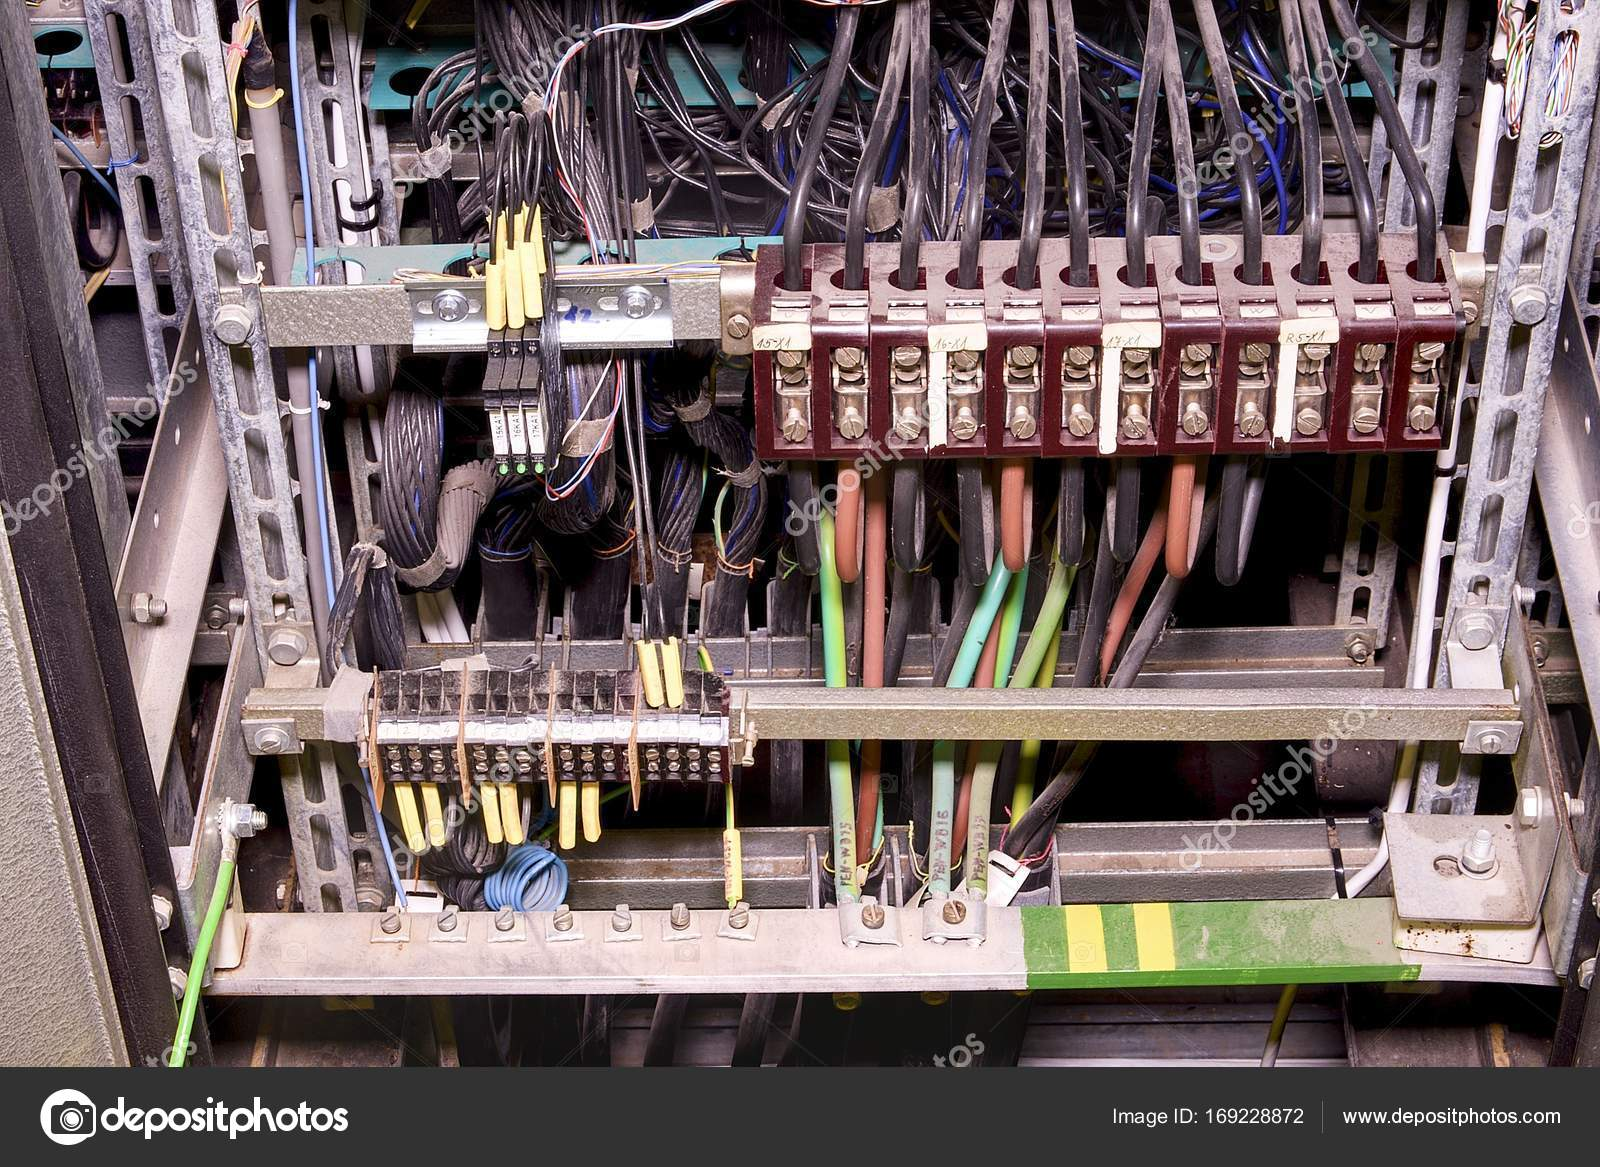 Closeup old distribution case in plant. Electric system in cabinet on